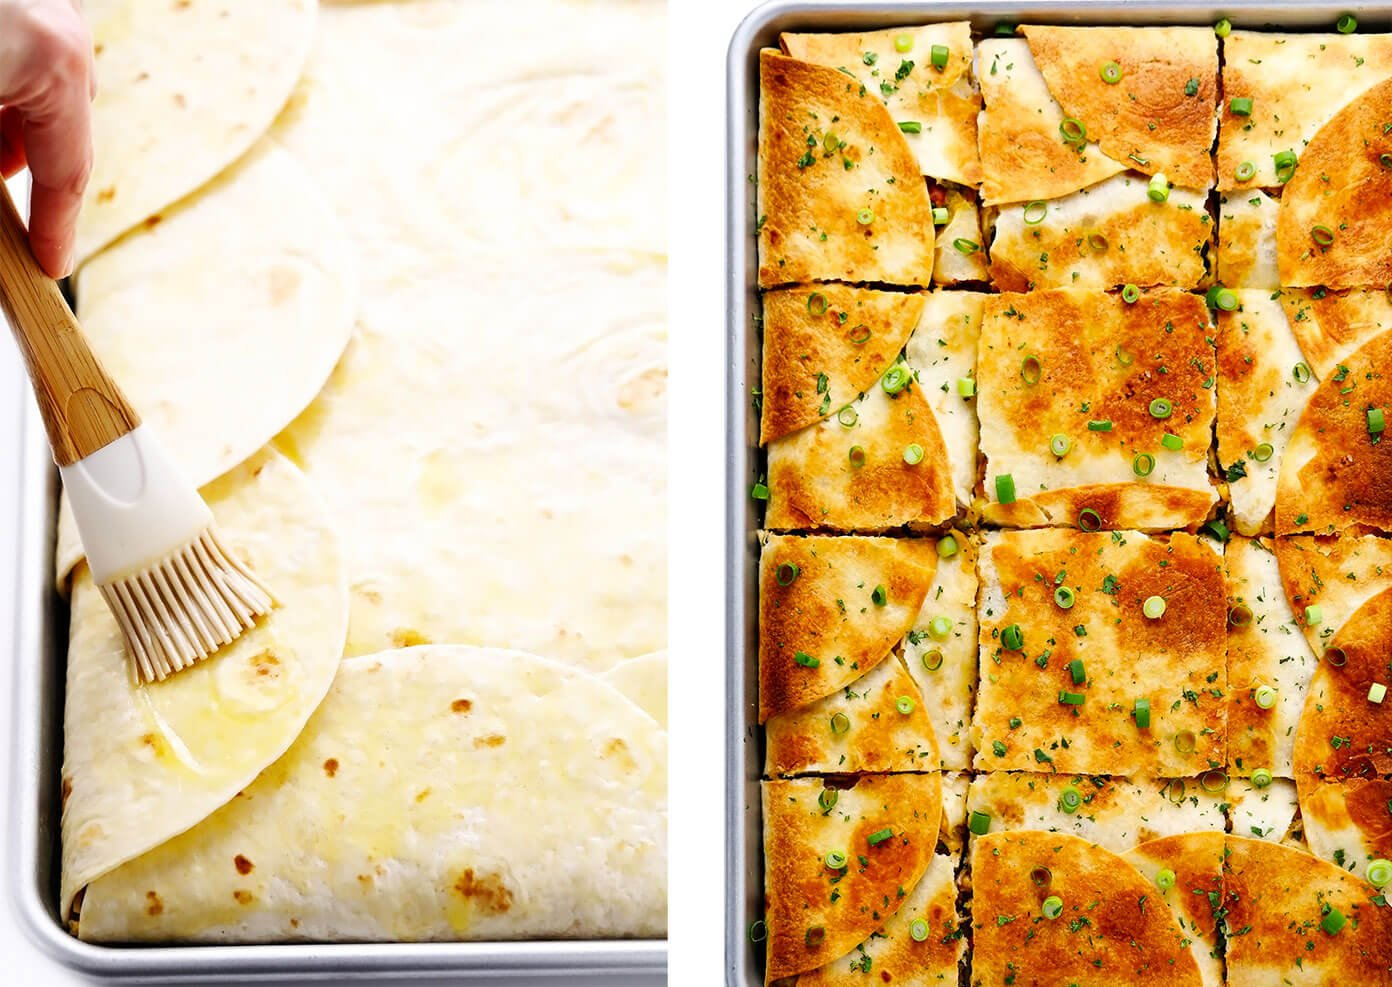 Brushing Sheet Pan Quesadilla with Butter